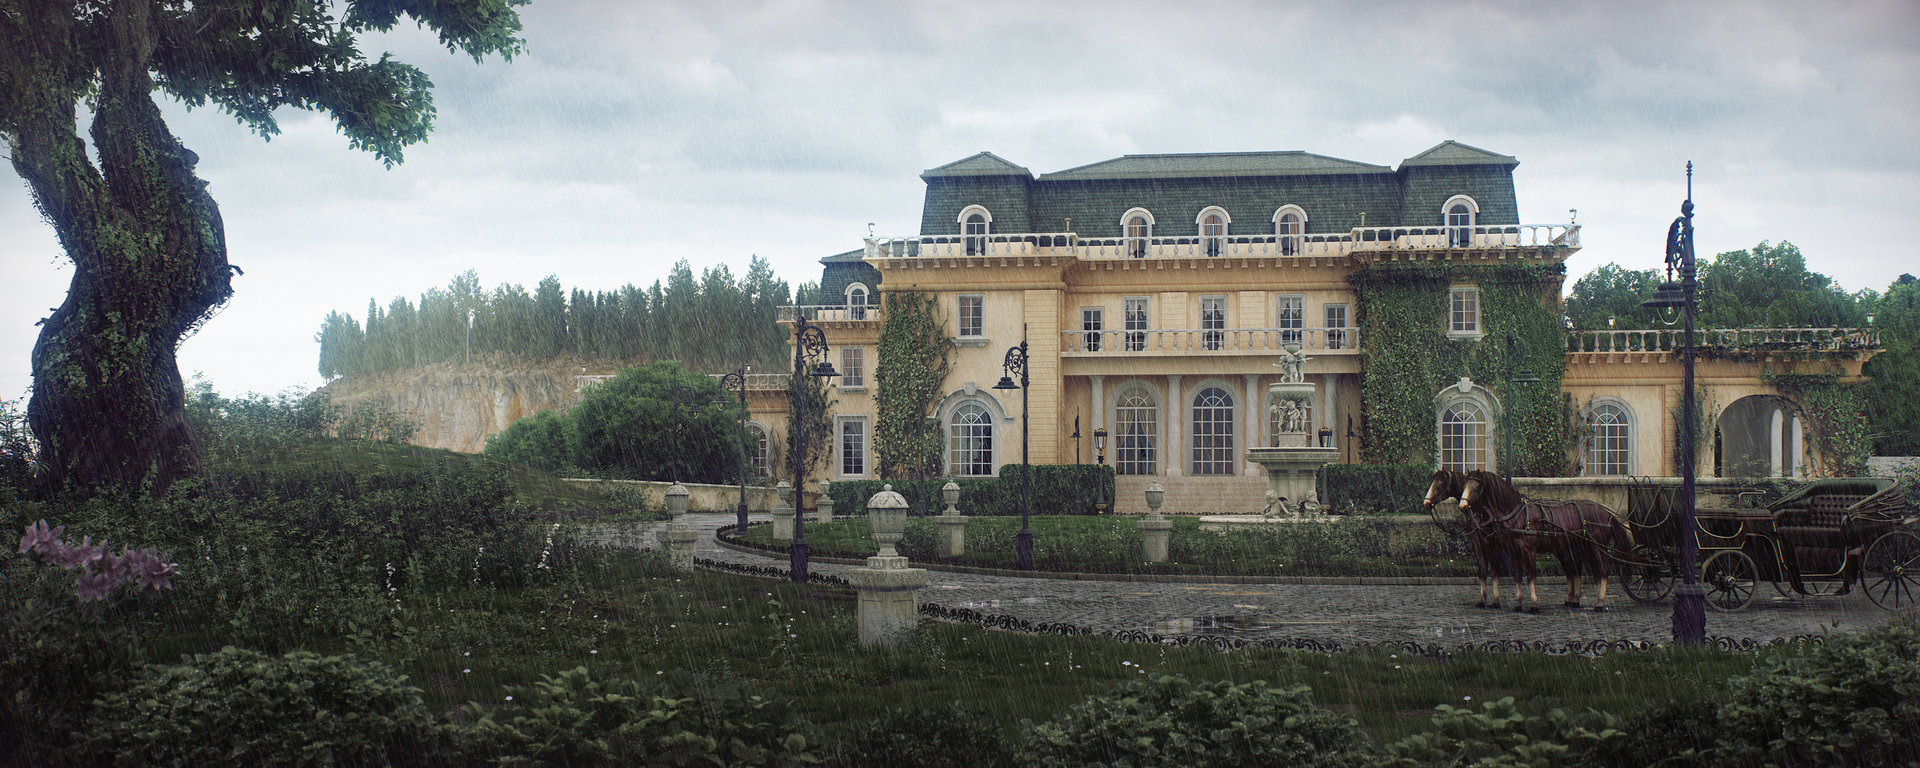 Large Mansions Andrew Averkin Old Mansion